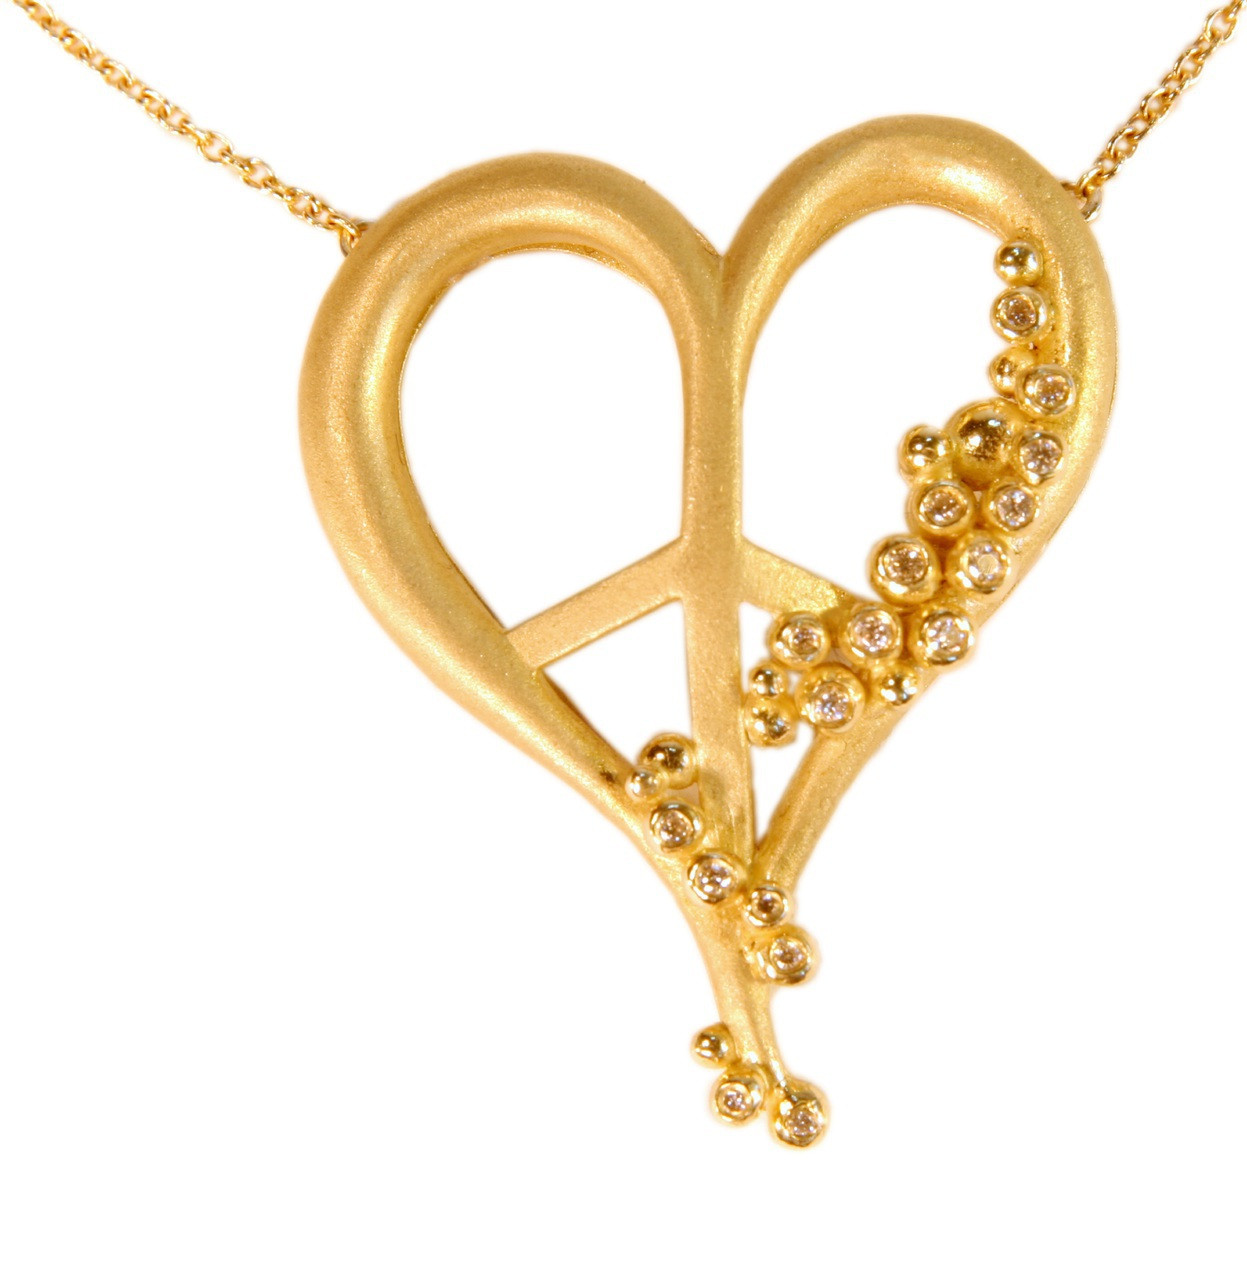 Peace of Heart necklace-large-18K gold with diamonds